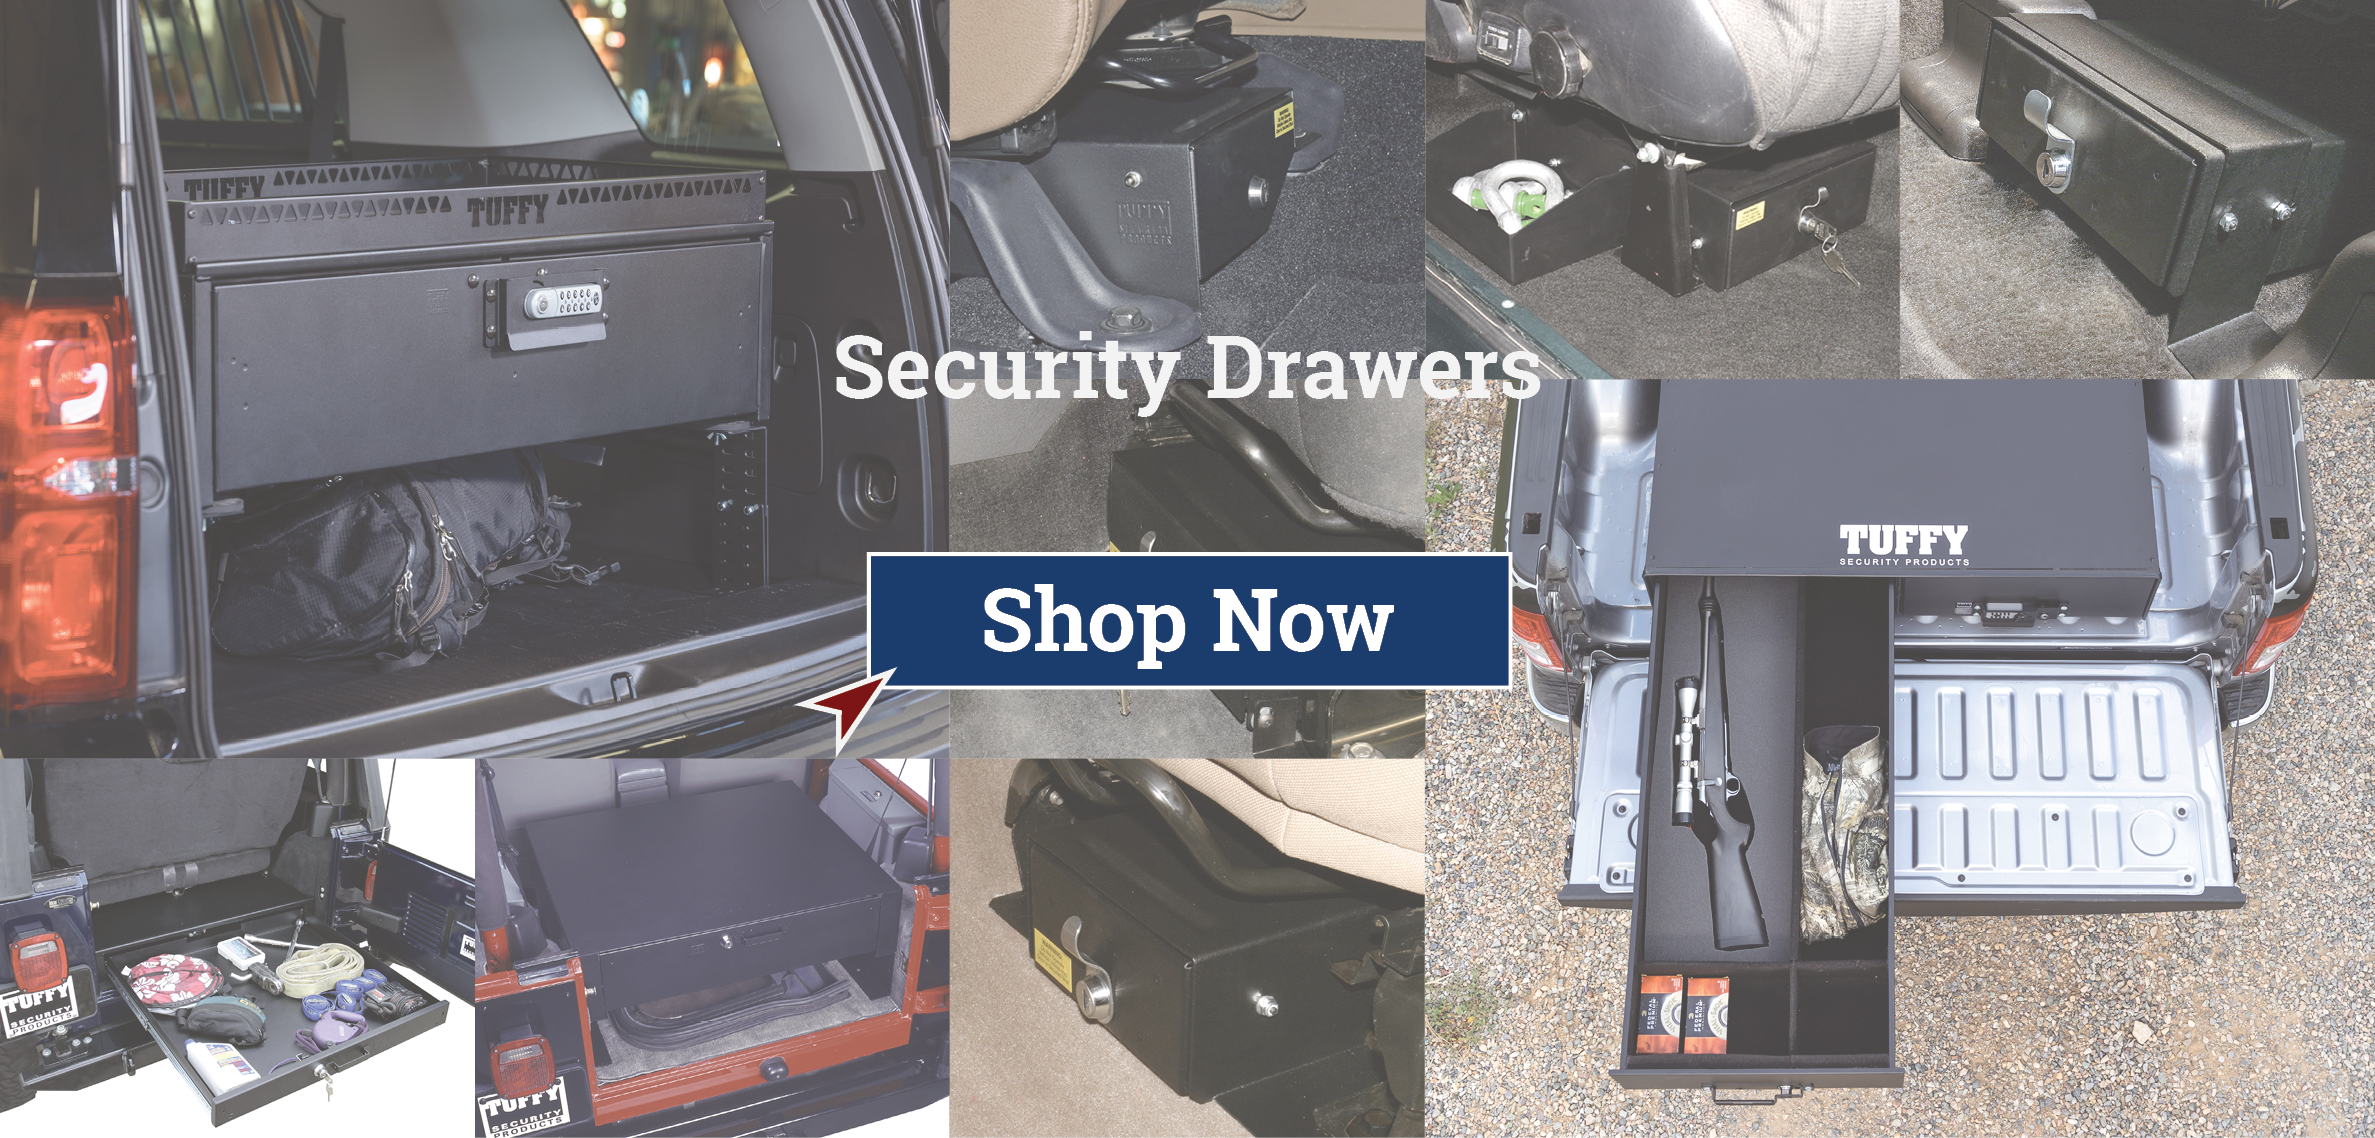 Tuffy Security Drawers